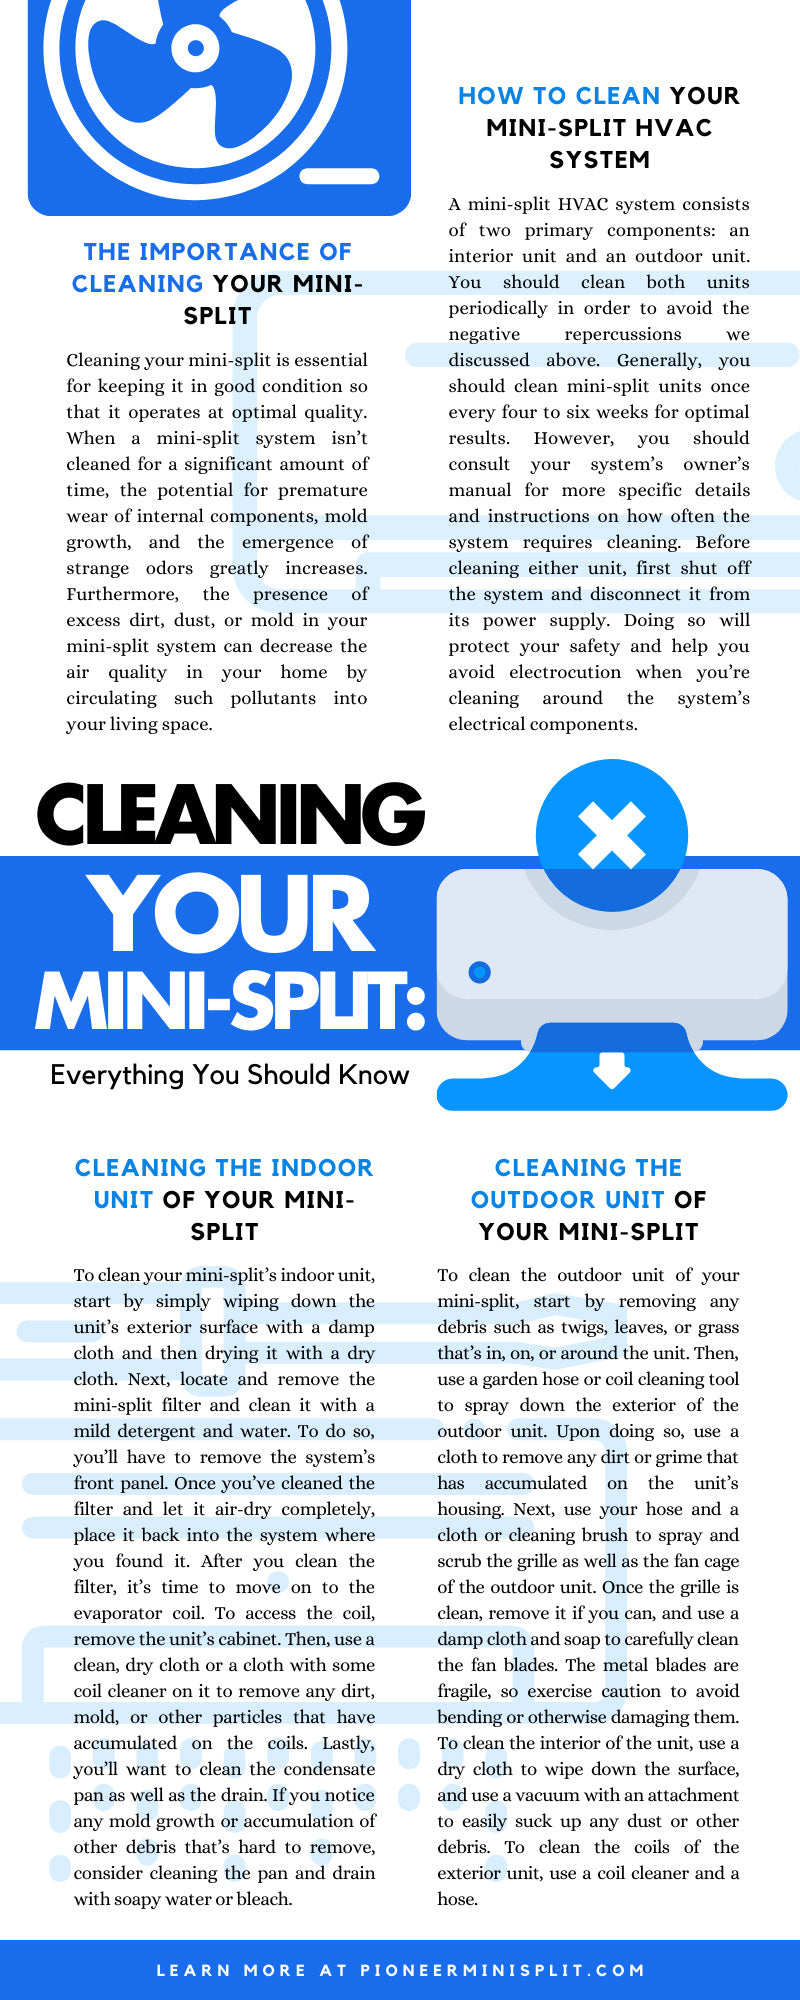 Cleaning Your Mini-Split: Everything You Should Know